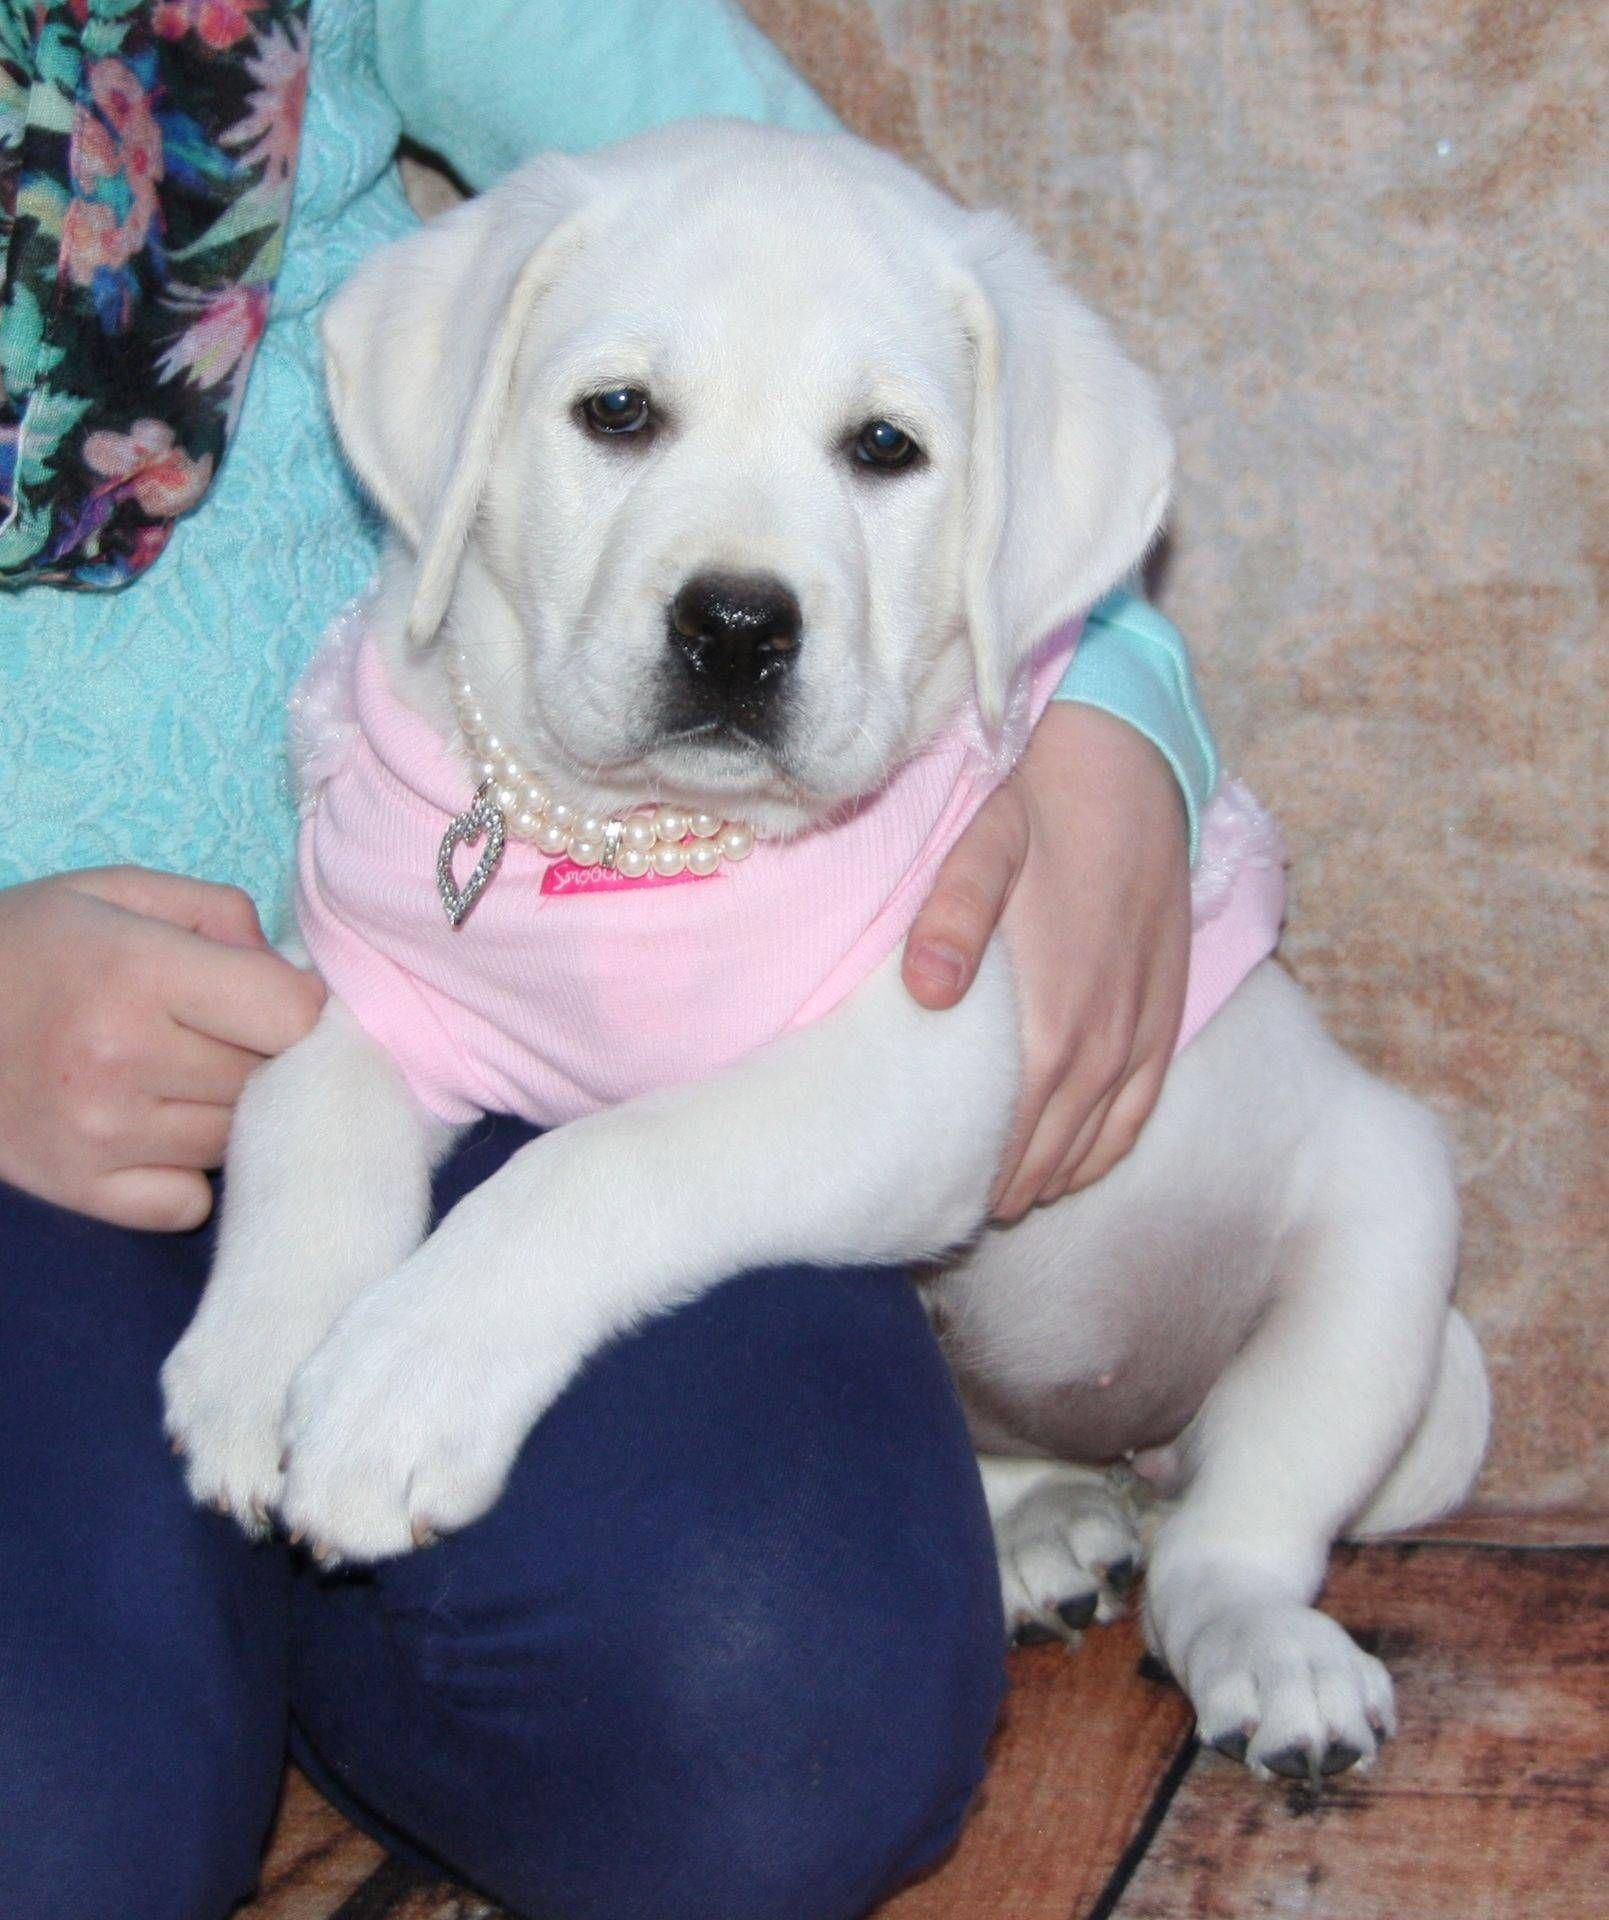 White Labrador Puppy And Puppies For Sale Buy A White Lab Puppy Labradorpuppies Labrador Puppy Labrador Retriever White Labrador Puppy